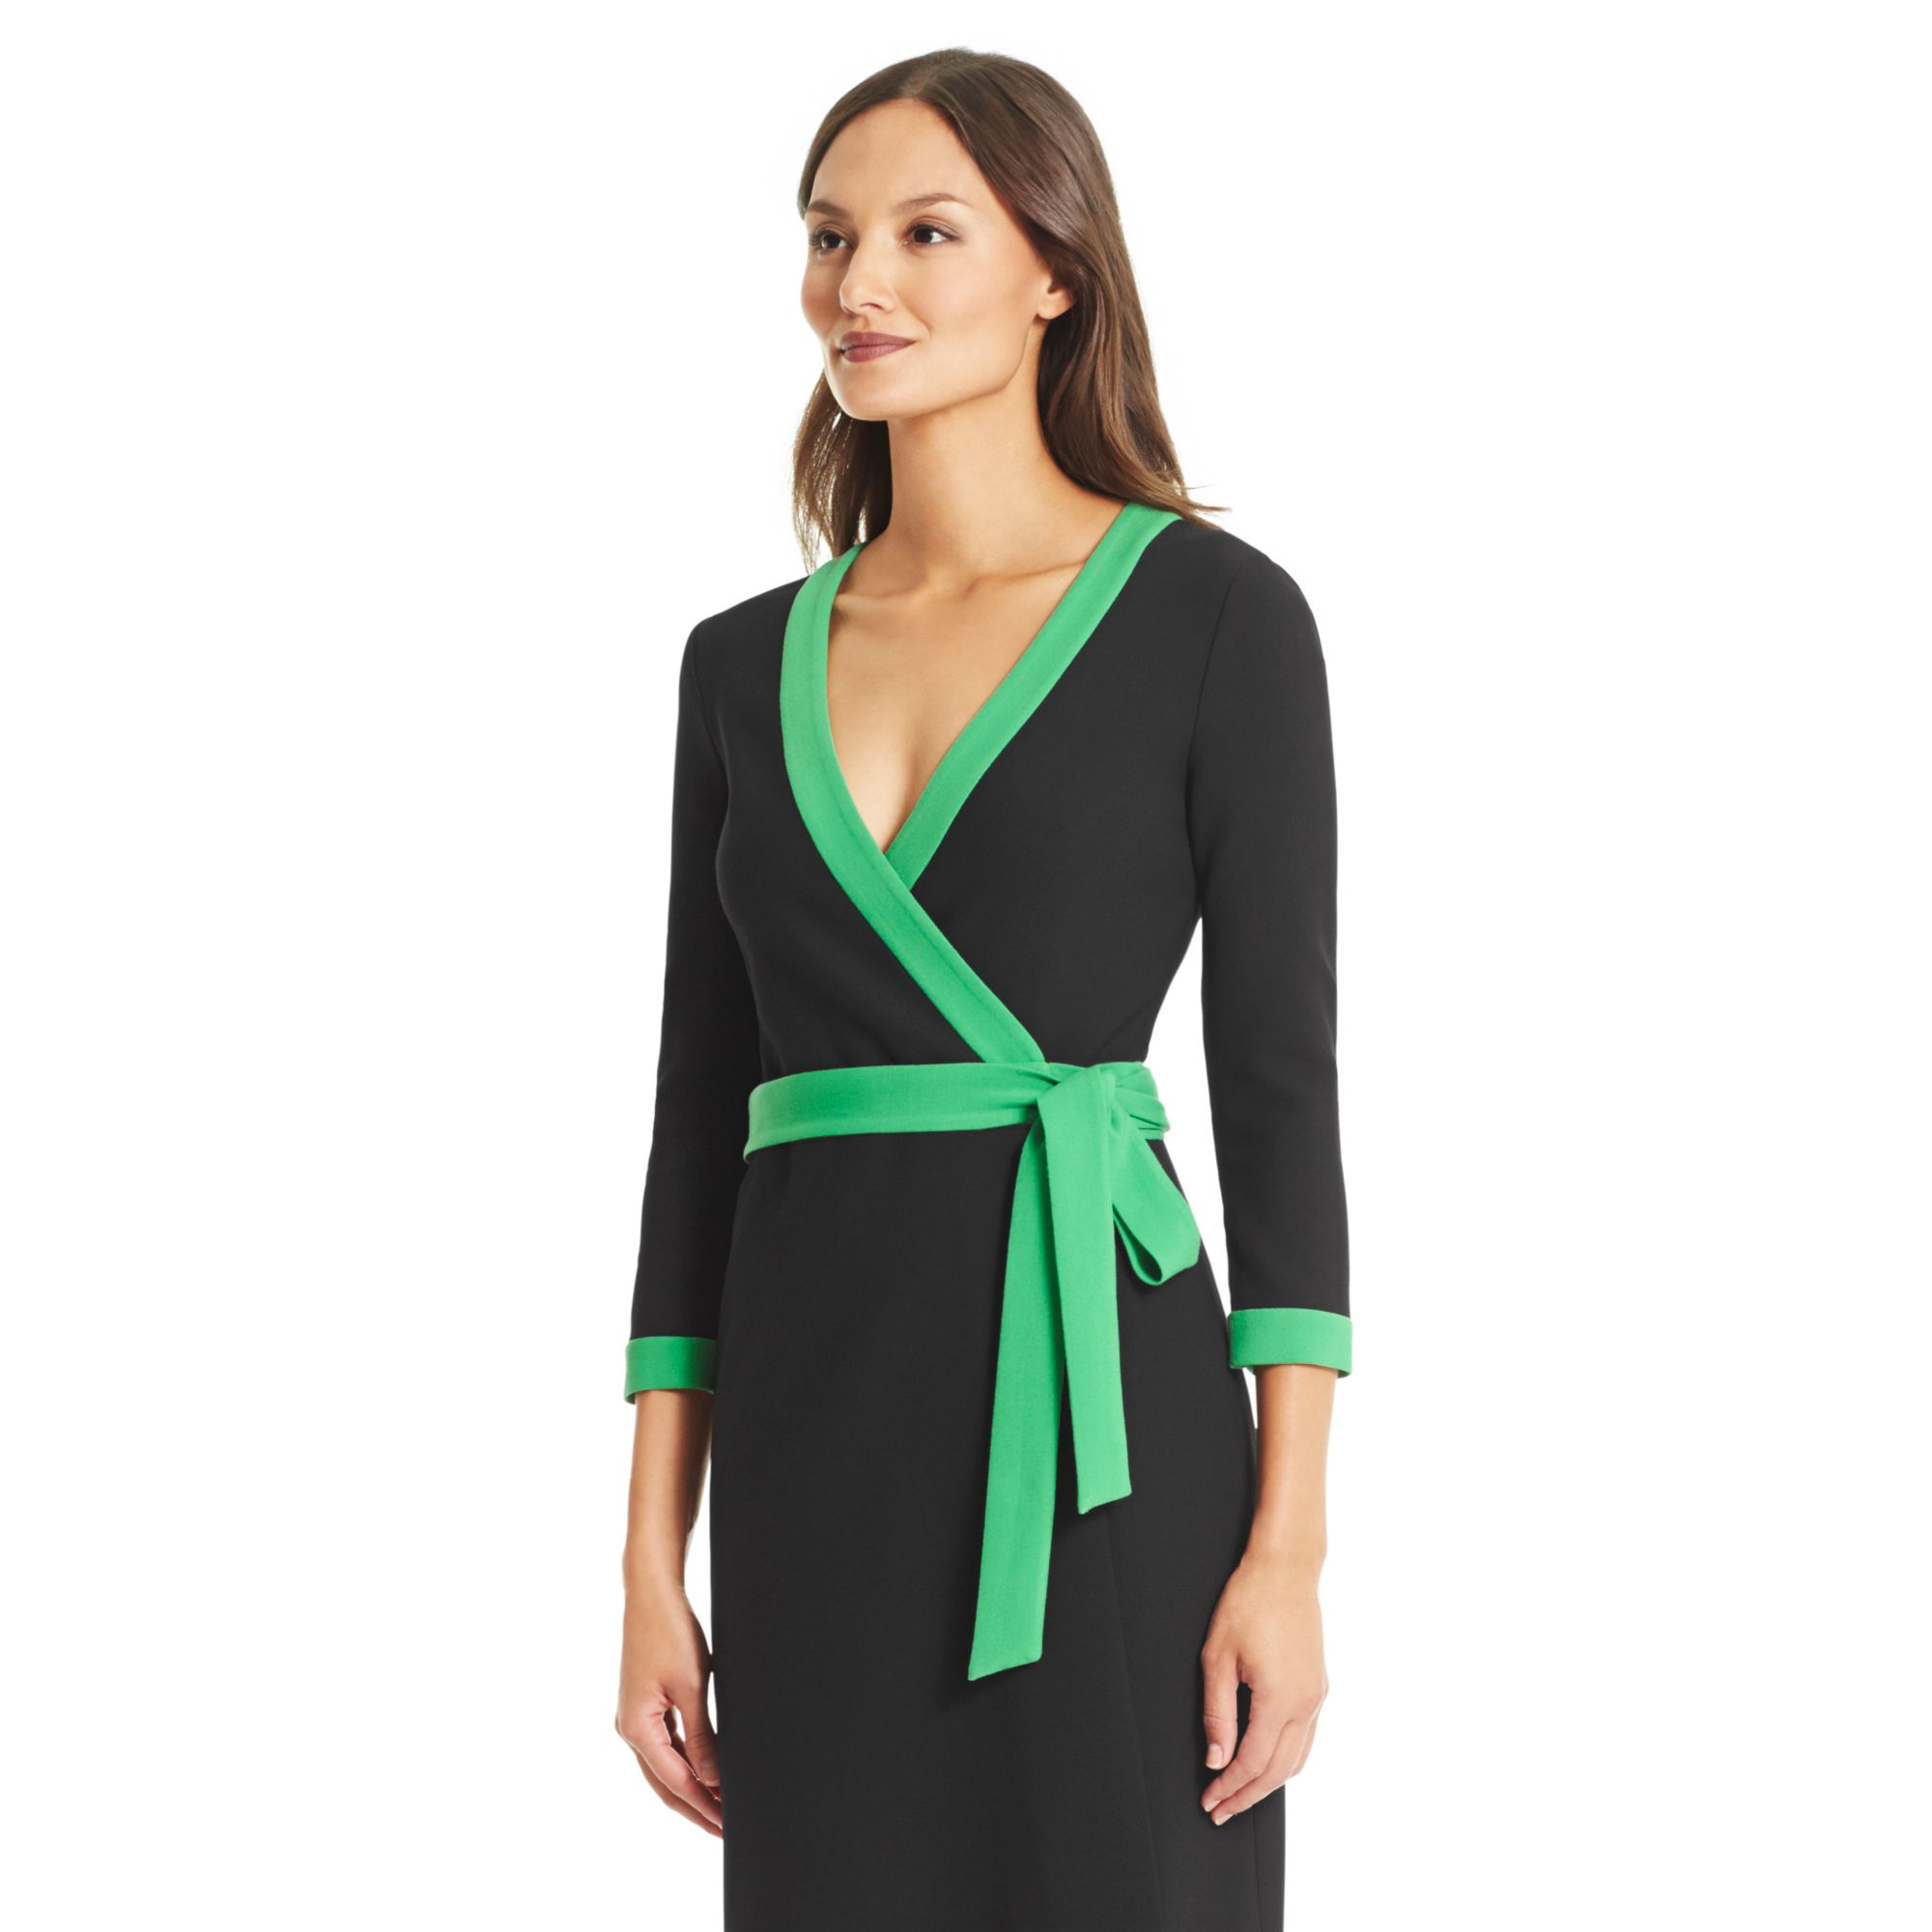 Diane von Furstenberg's iconic wrap dresses are perfect for the office or an evening out. Find designer wrap dress styles and online exclusives at metools.ml